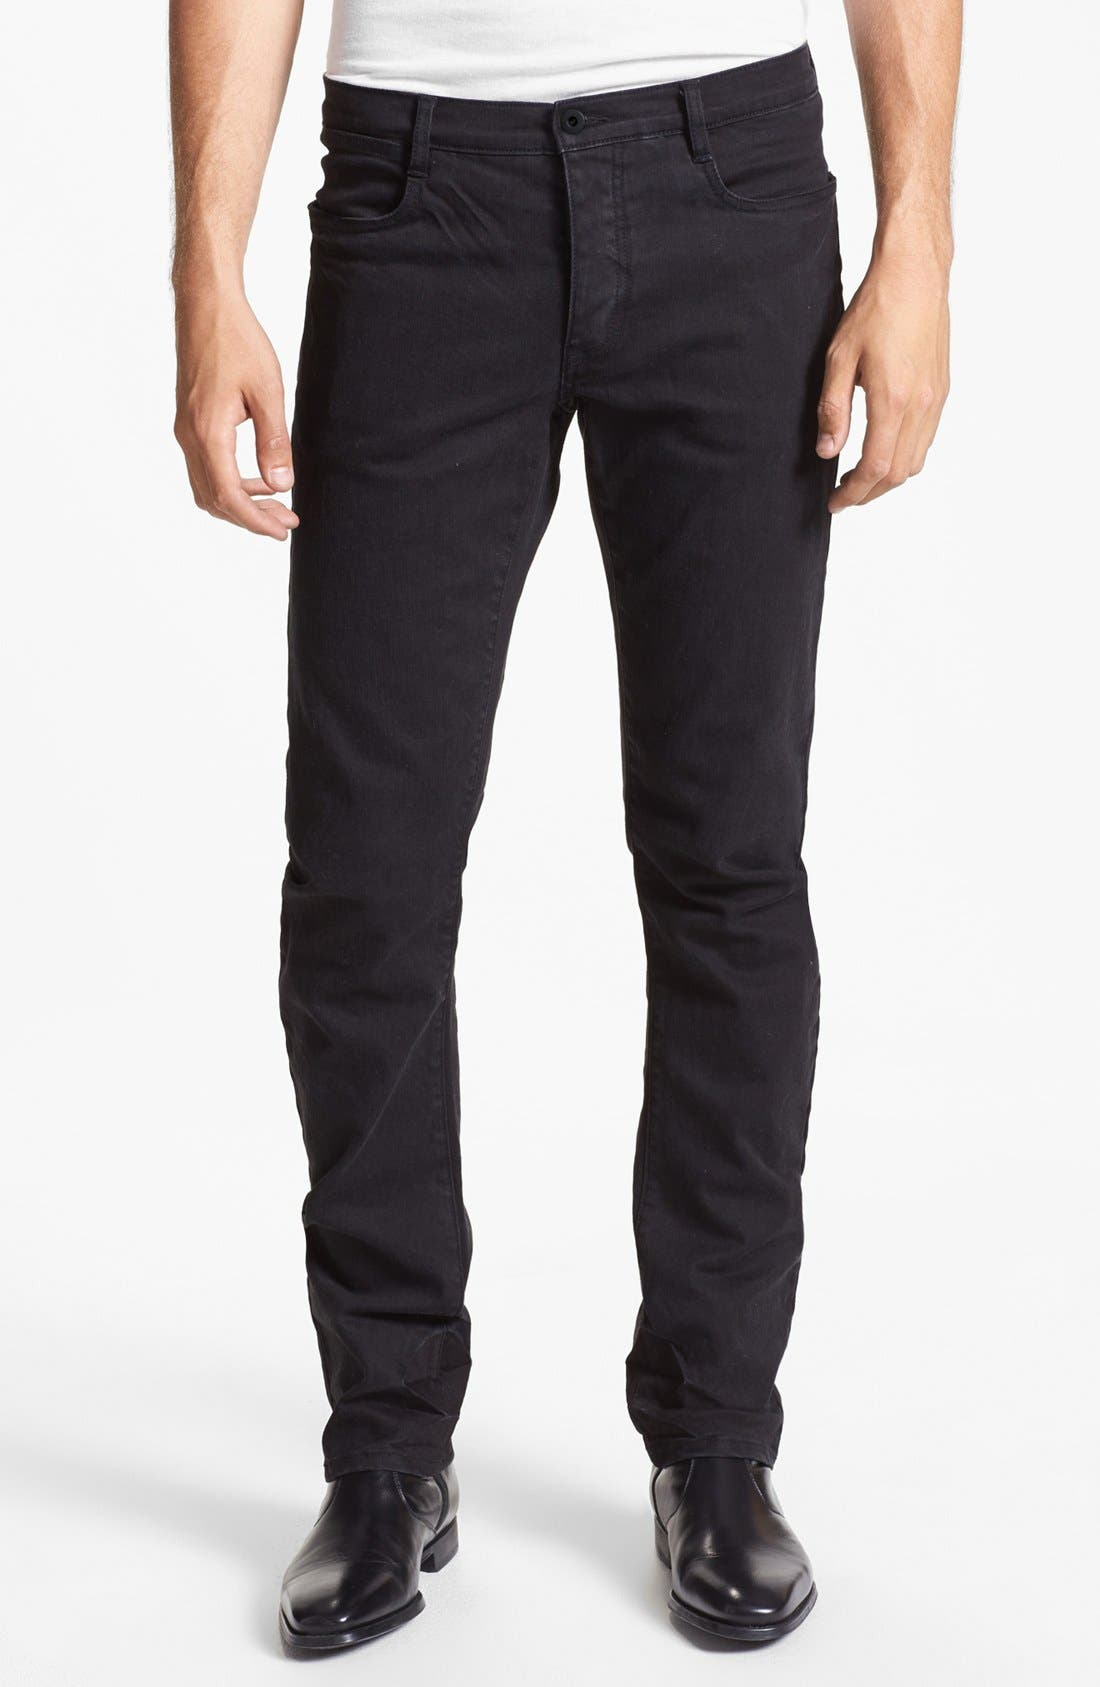 Alternate Image 1 Selected - Kenneth Cole Collection Slim Fit Jeans (Black)